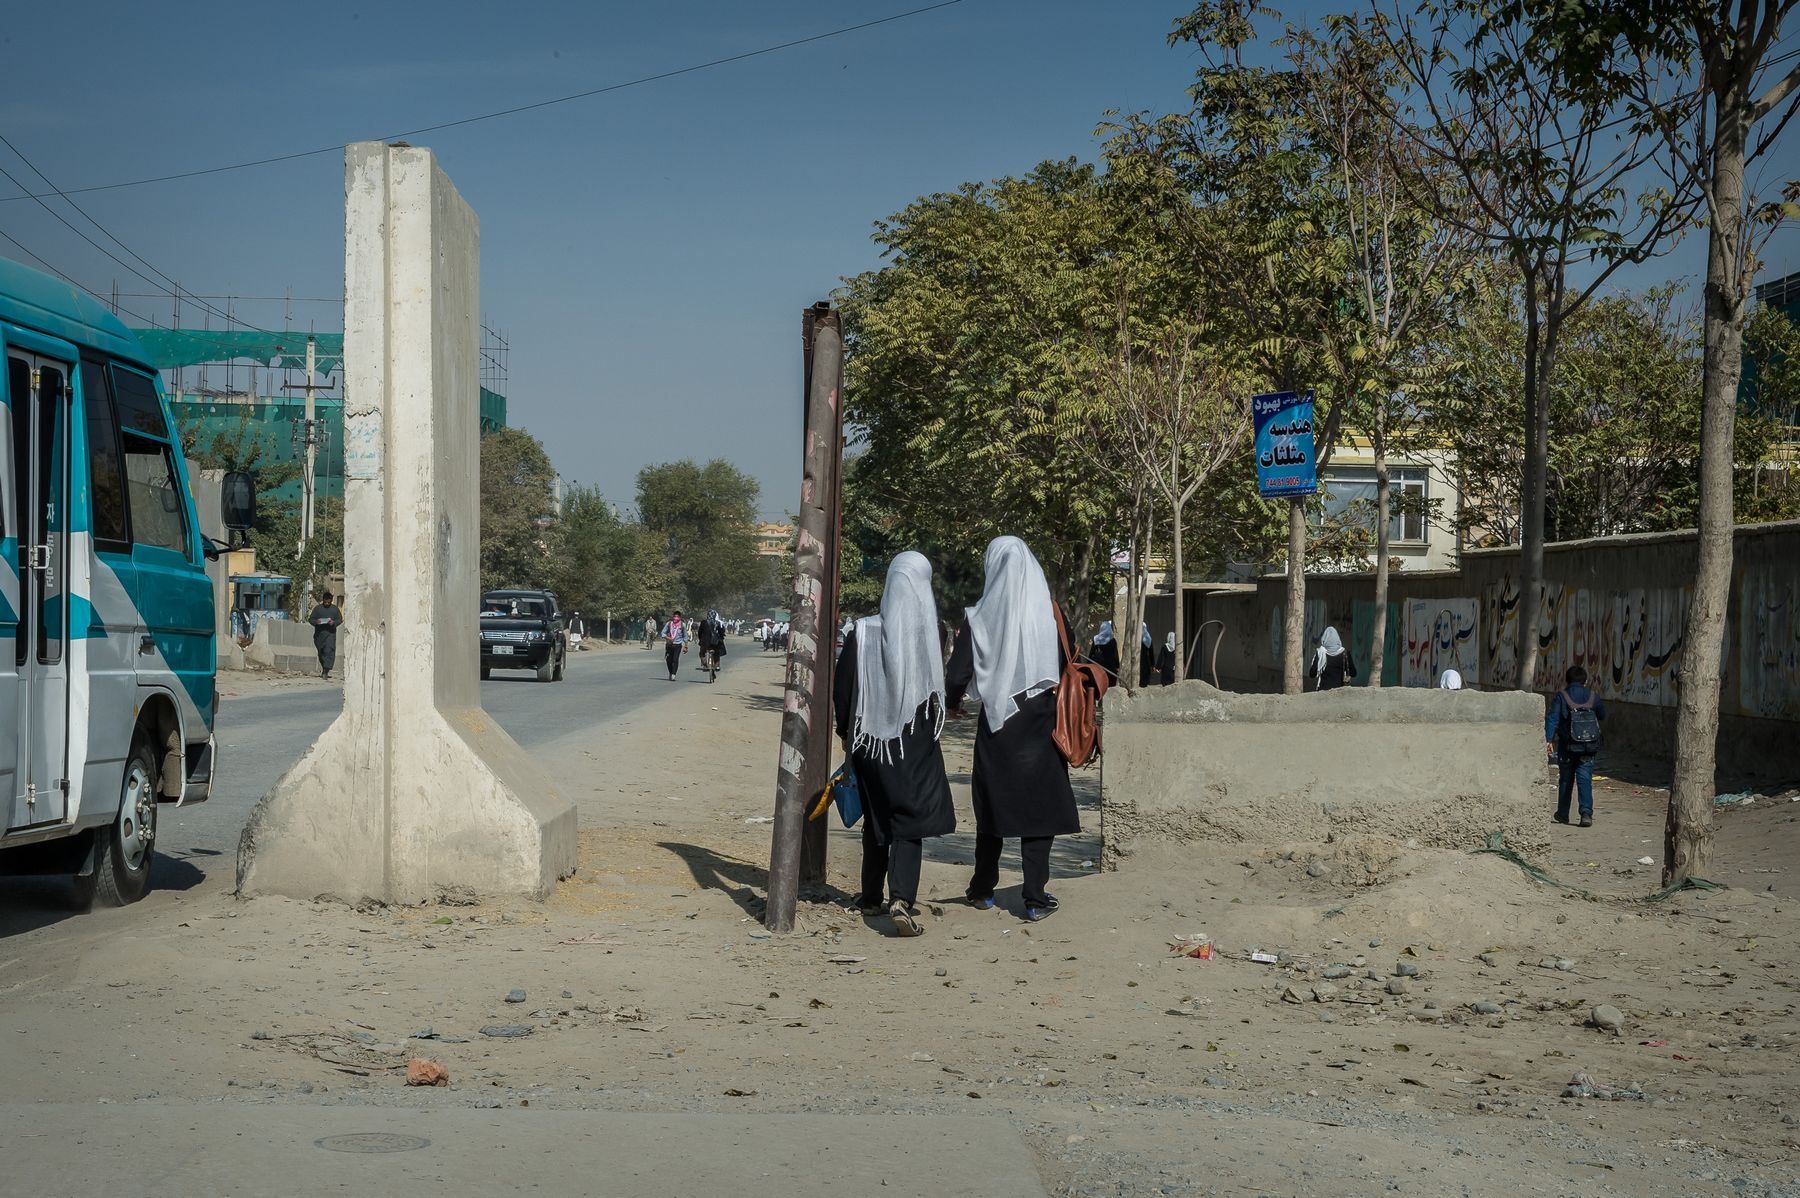 31 October 2015 - Kabul, Afghanistan. Daily life in the capital. The country is facing a pivotal period in its history as International armies such as US and Italy decided not to leave the country but to prolong the ongoing war against Talibans in support of the Afghan official Government.